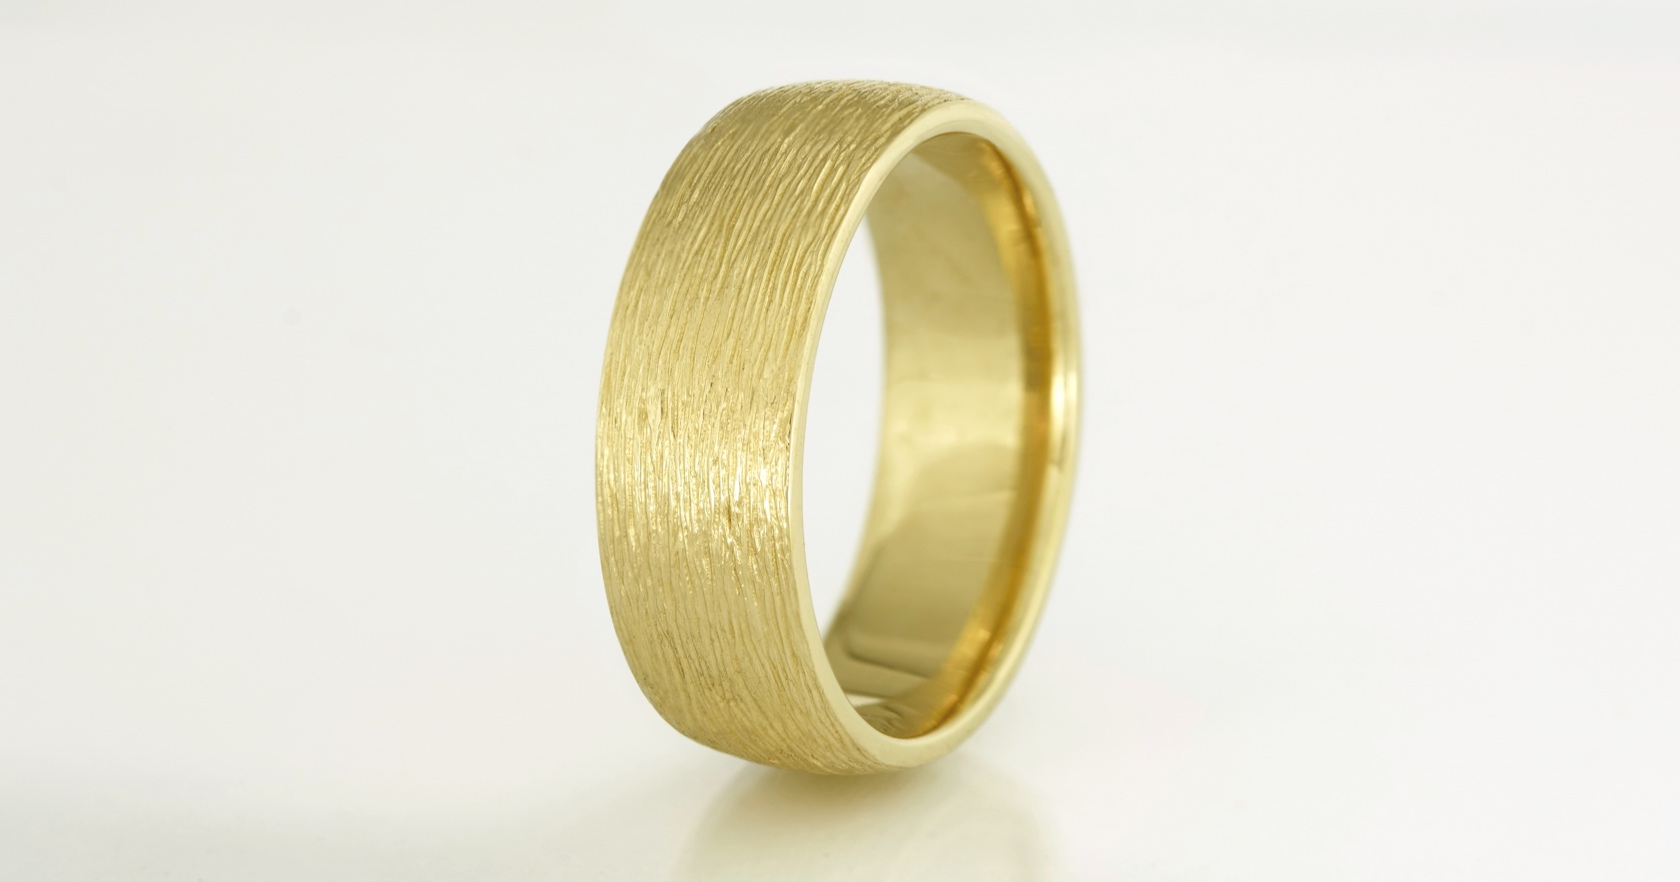 The finished ring in 18ct yellow gold at 7.5mm wide.